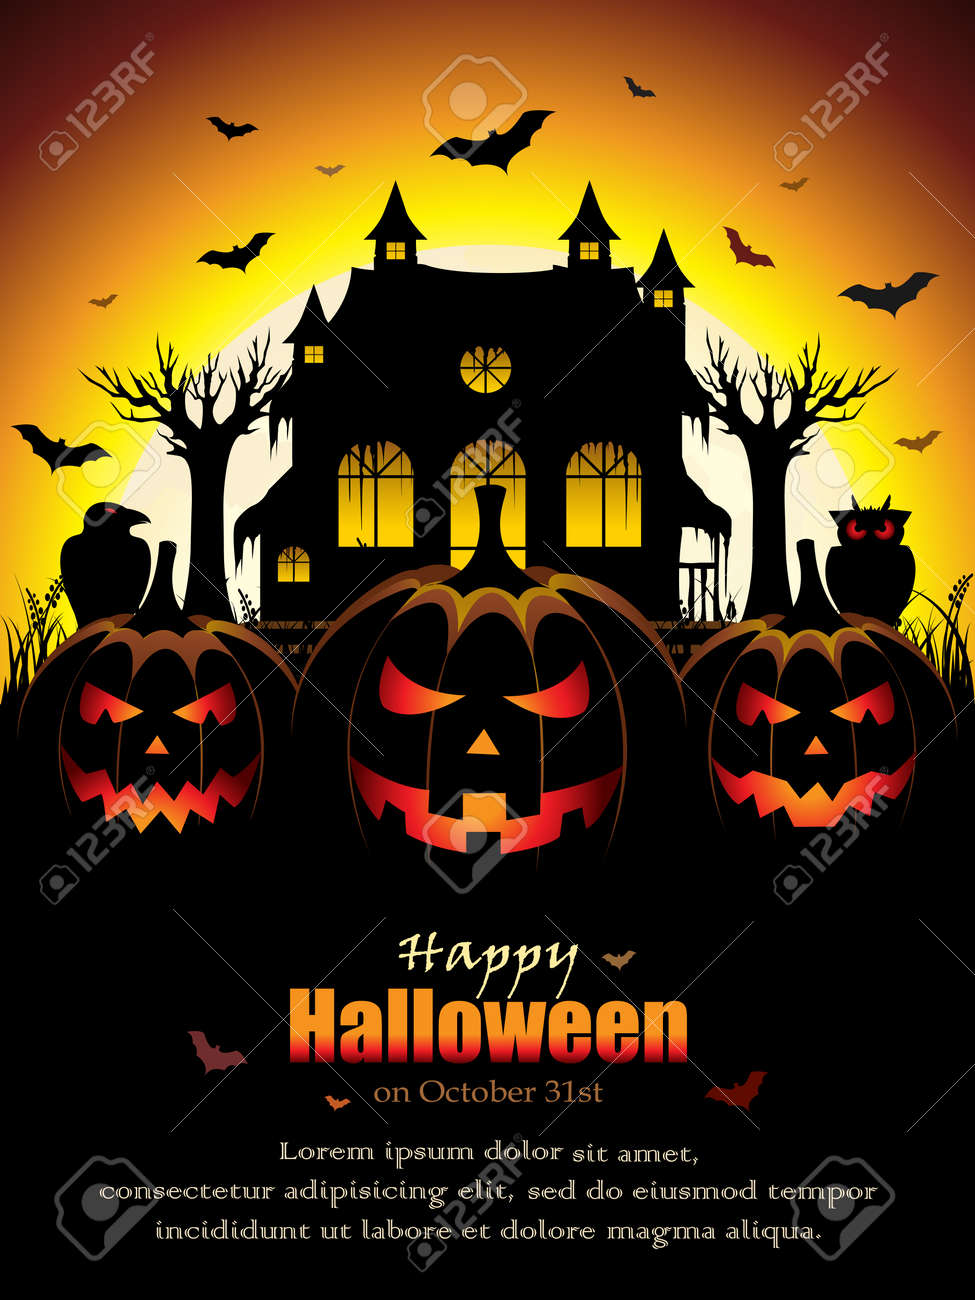 spooky halloween design stock vector 44707222 - Halloween Design